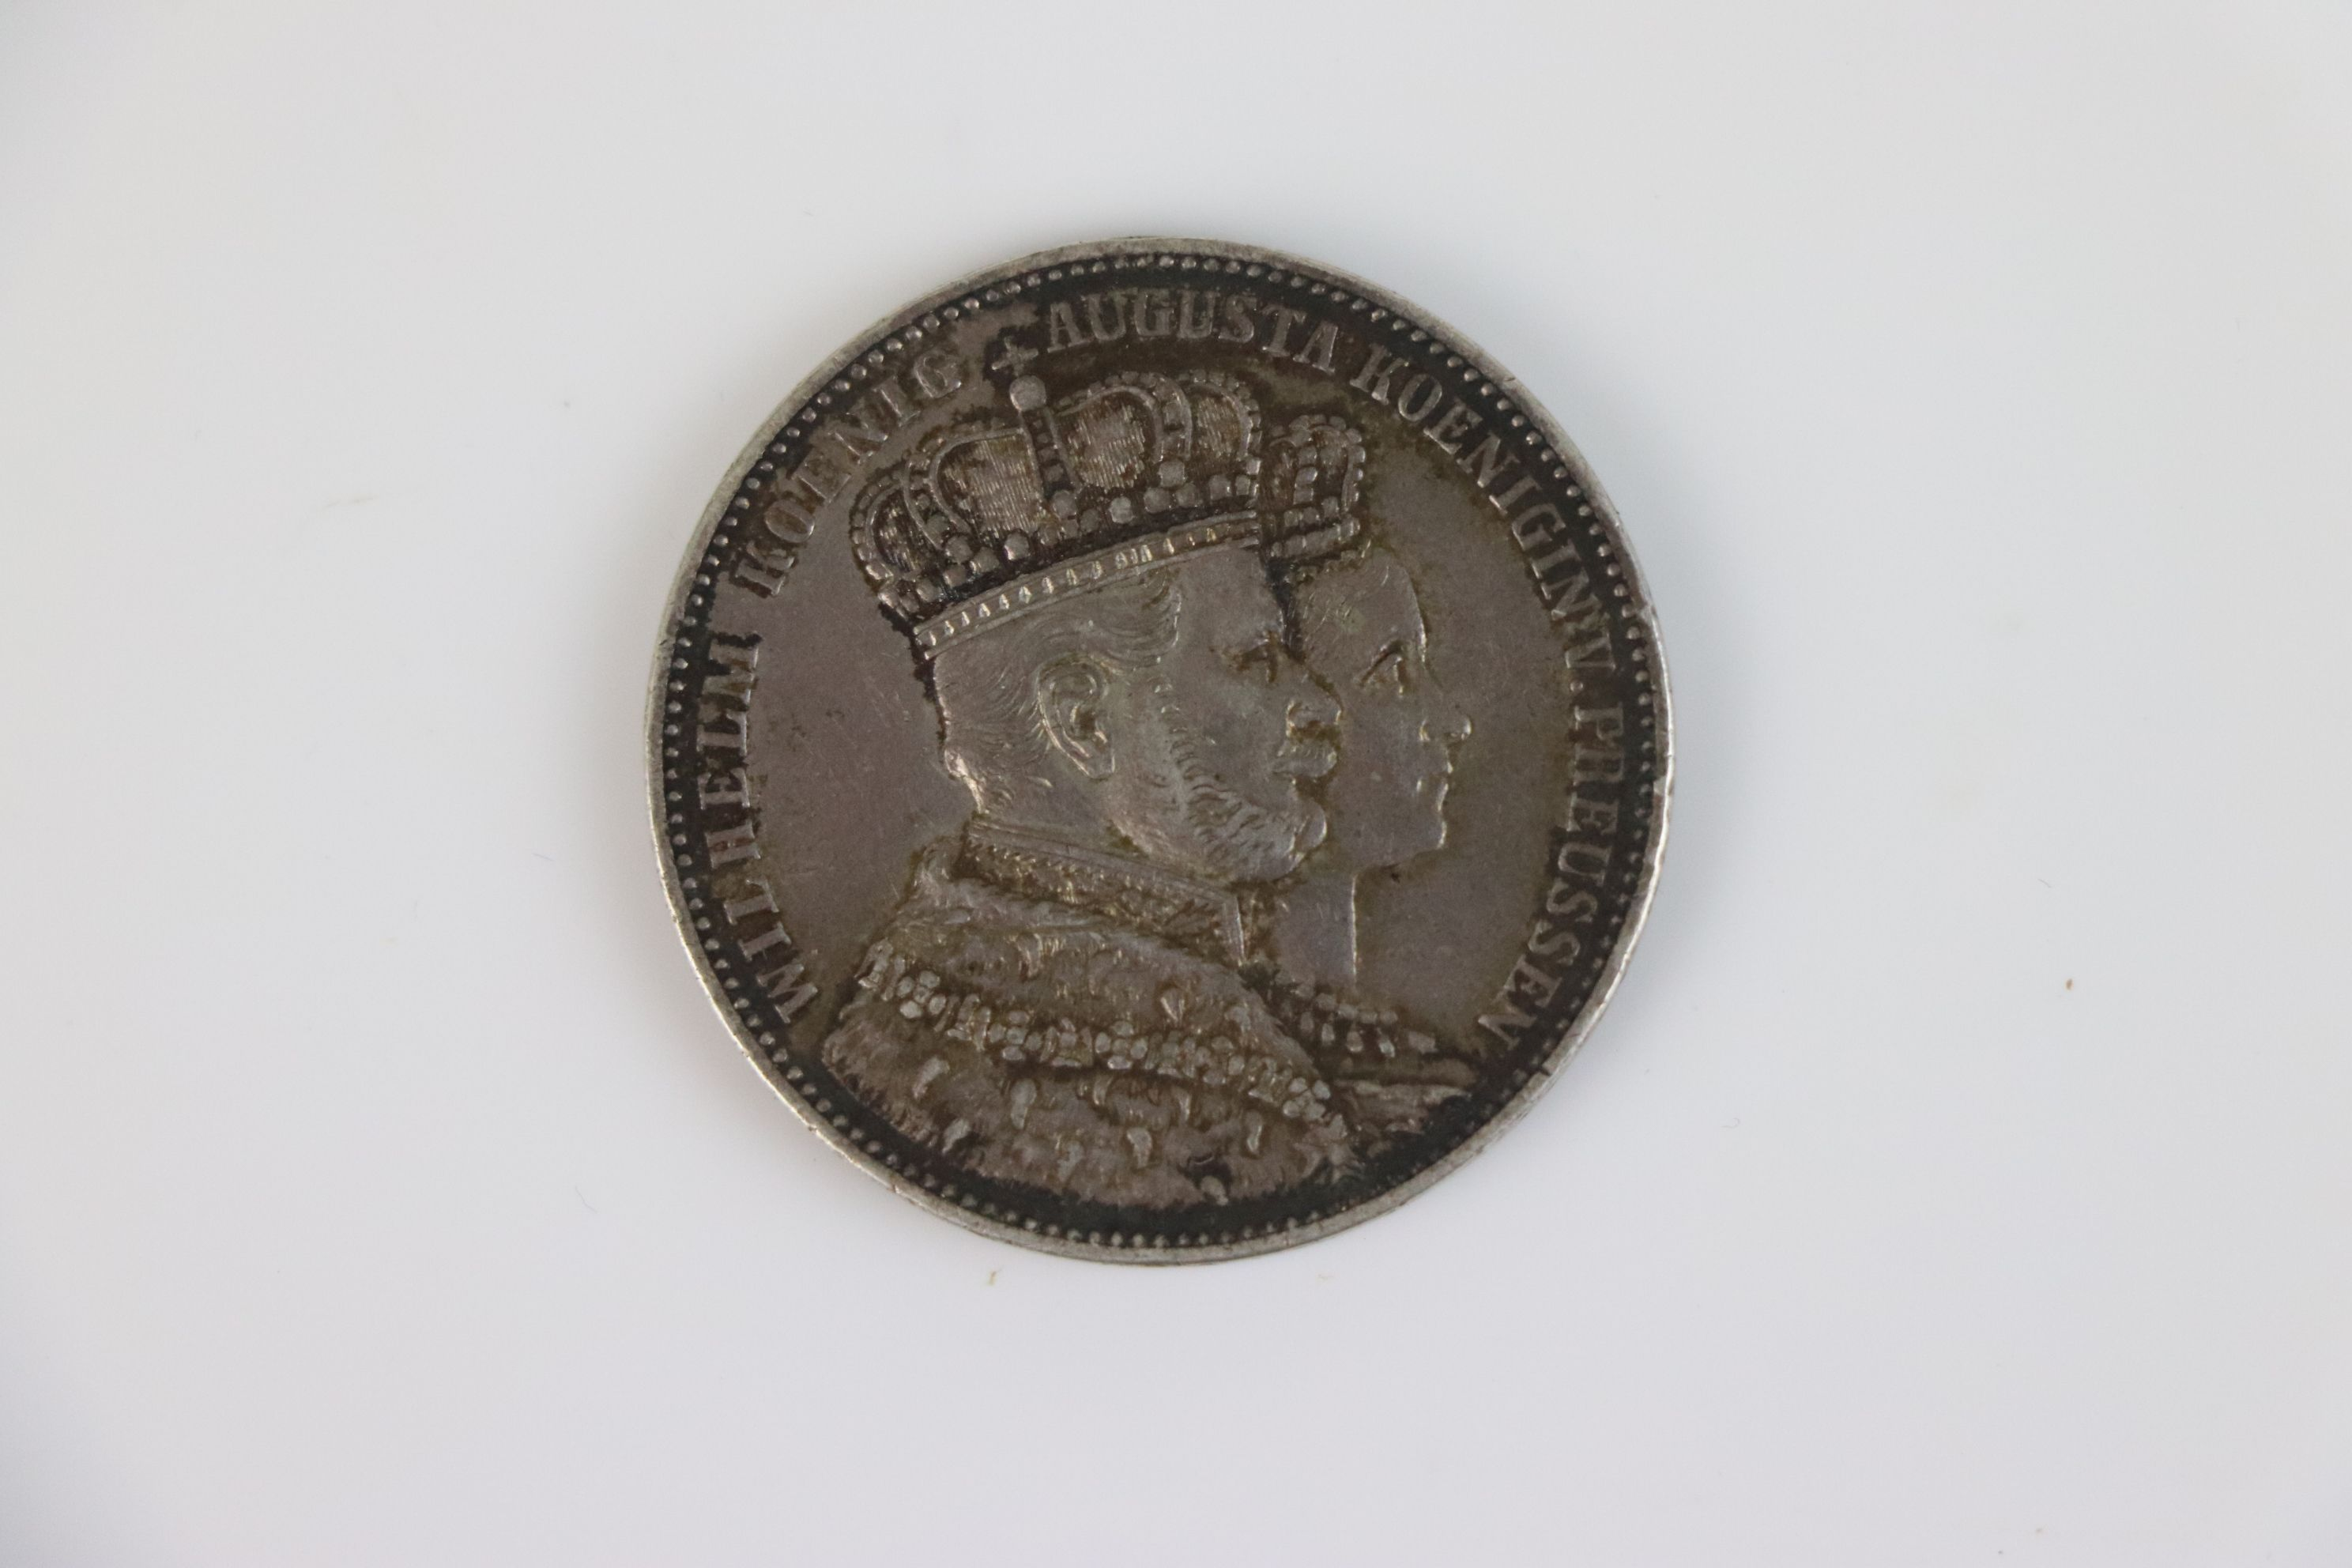 Prussian Silver Thaler coin 1861 - Image 3 of 3